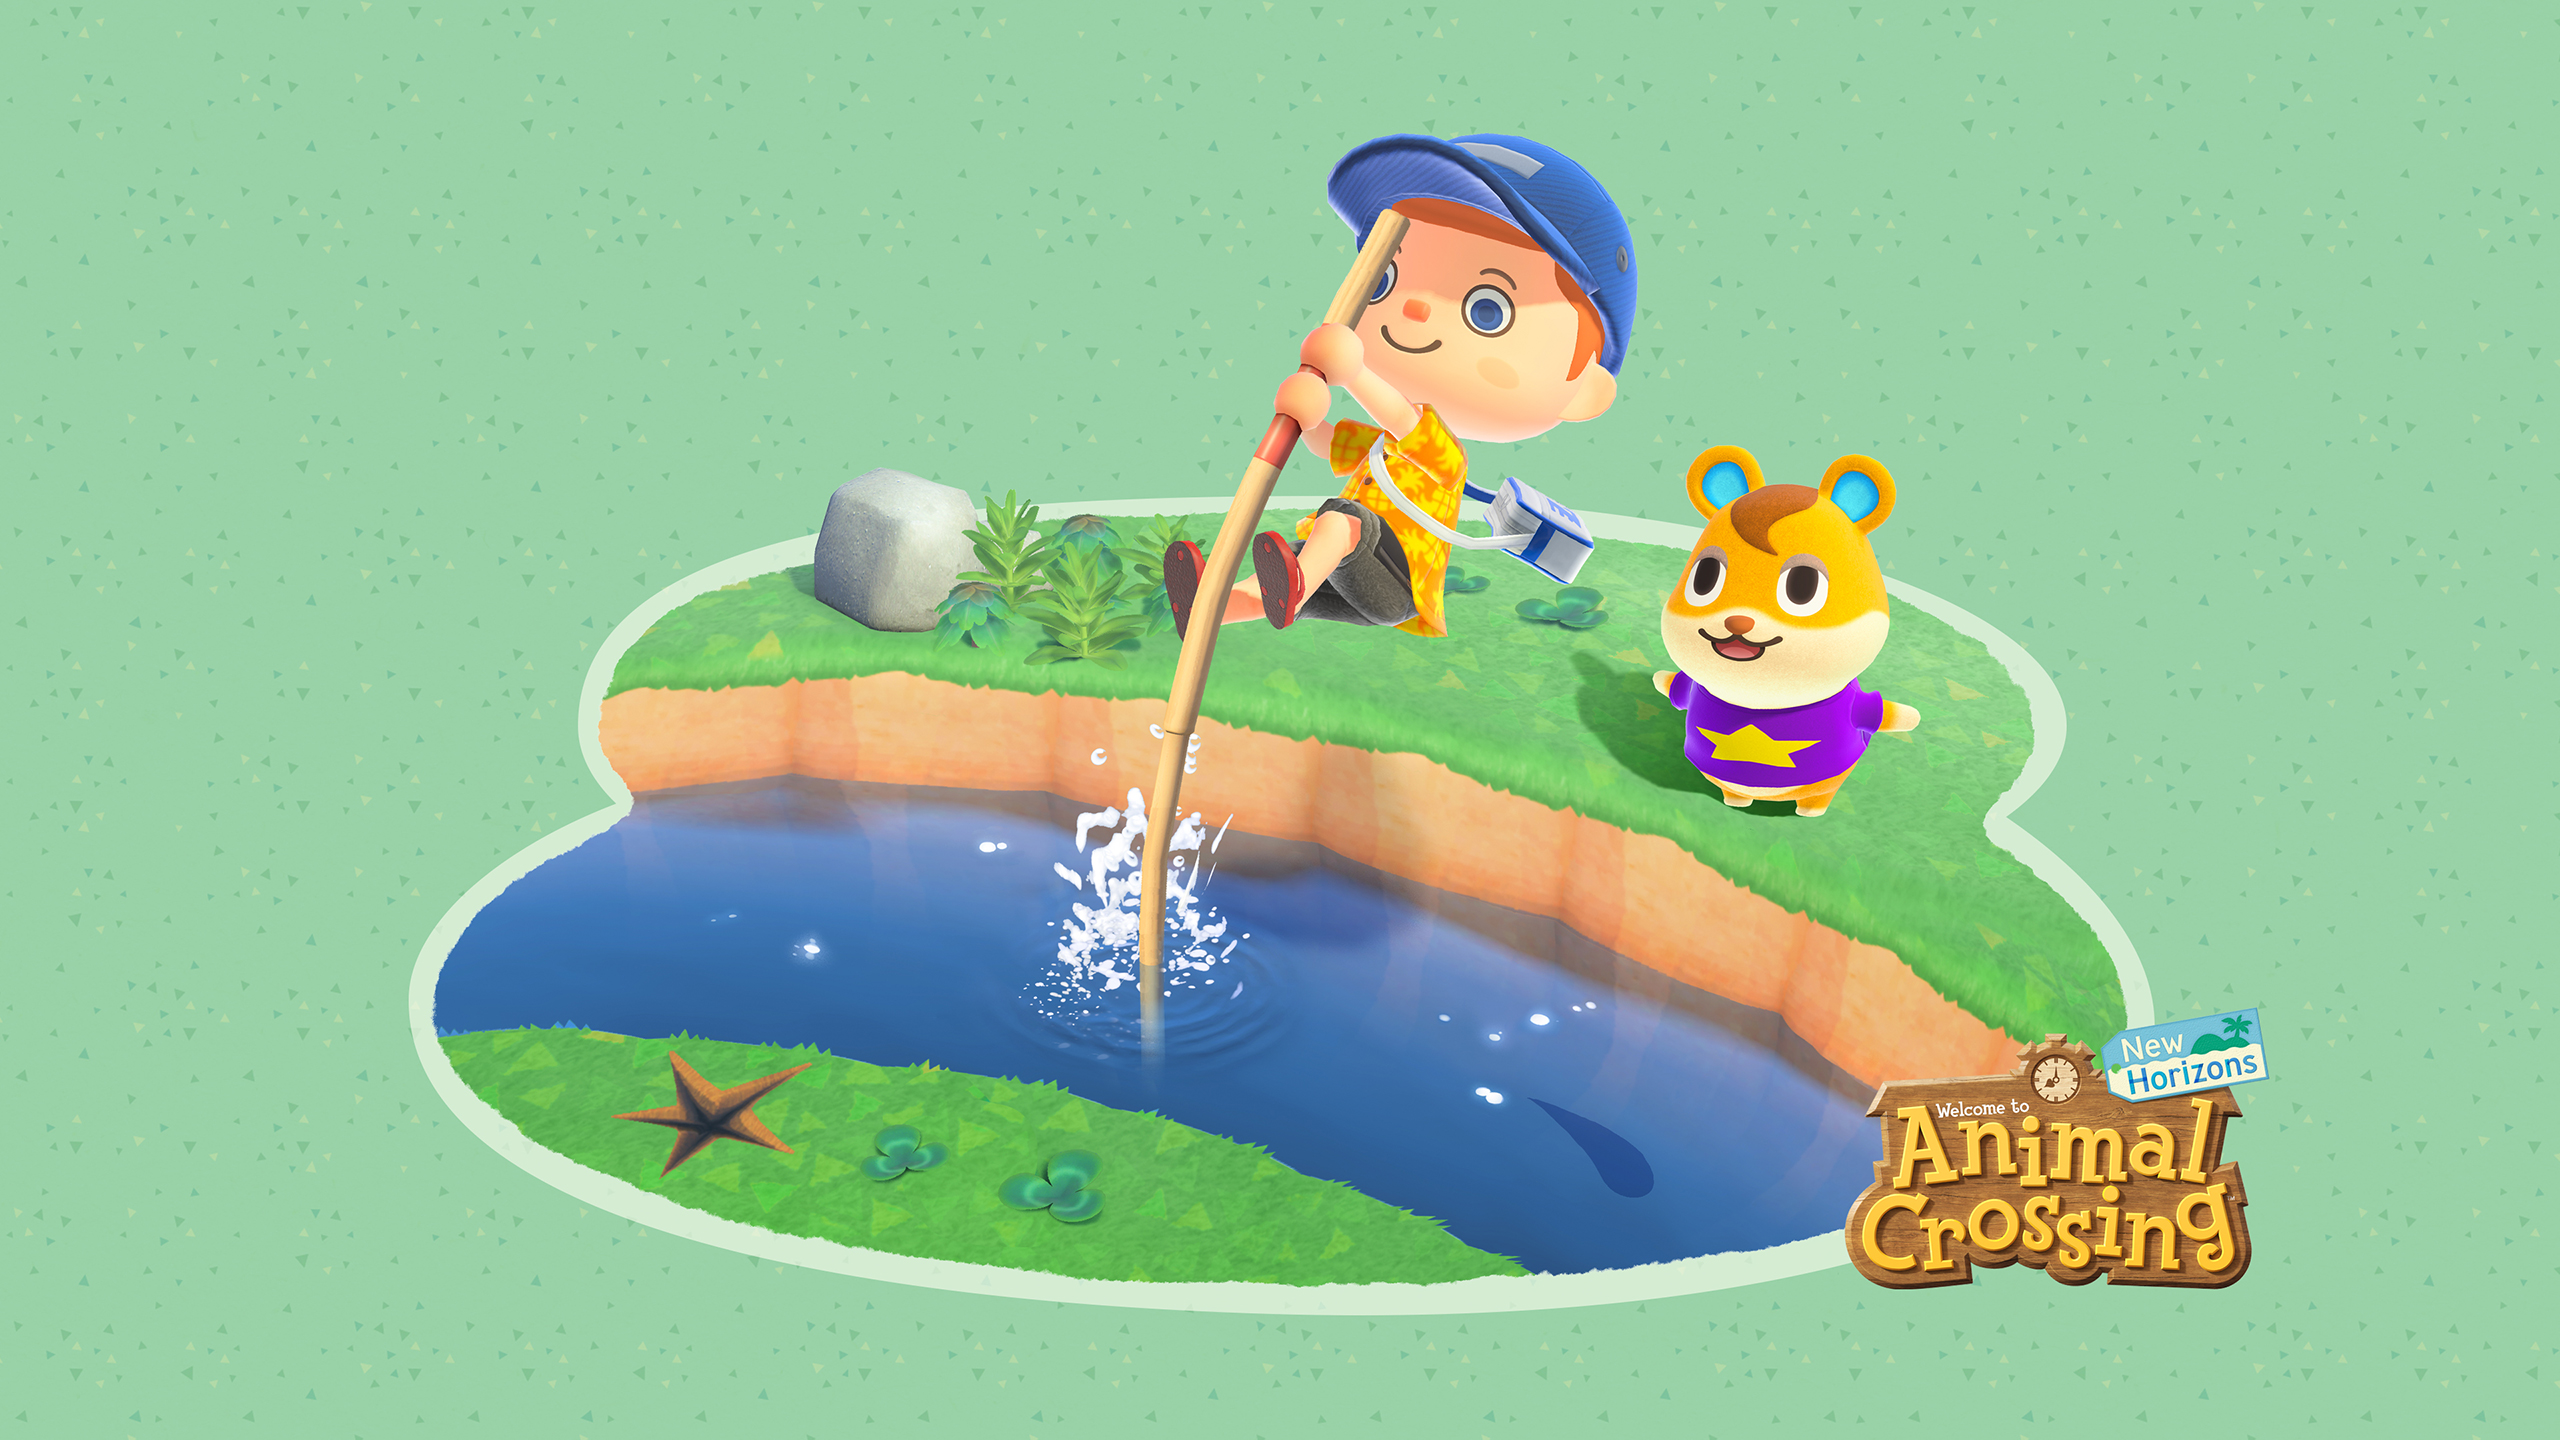 Animal Crossing New Horizons Water Jump Wallpaper Cat With Monocle